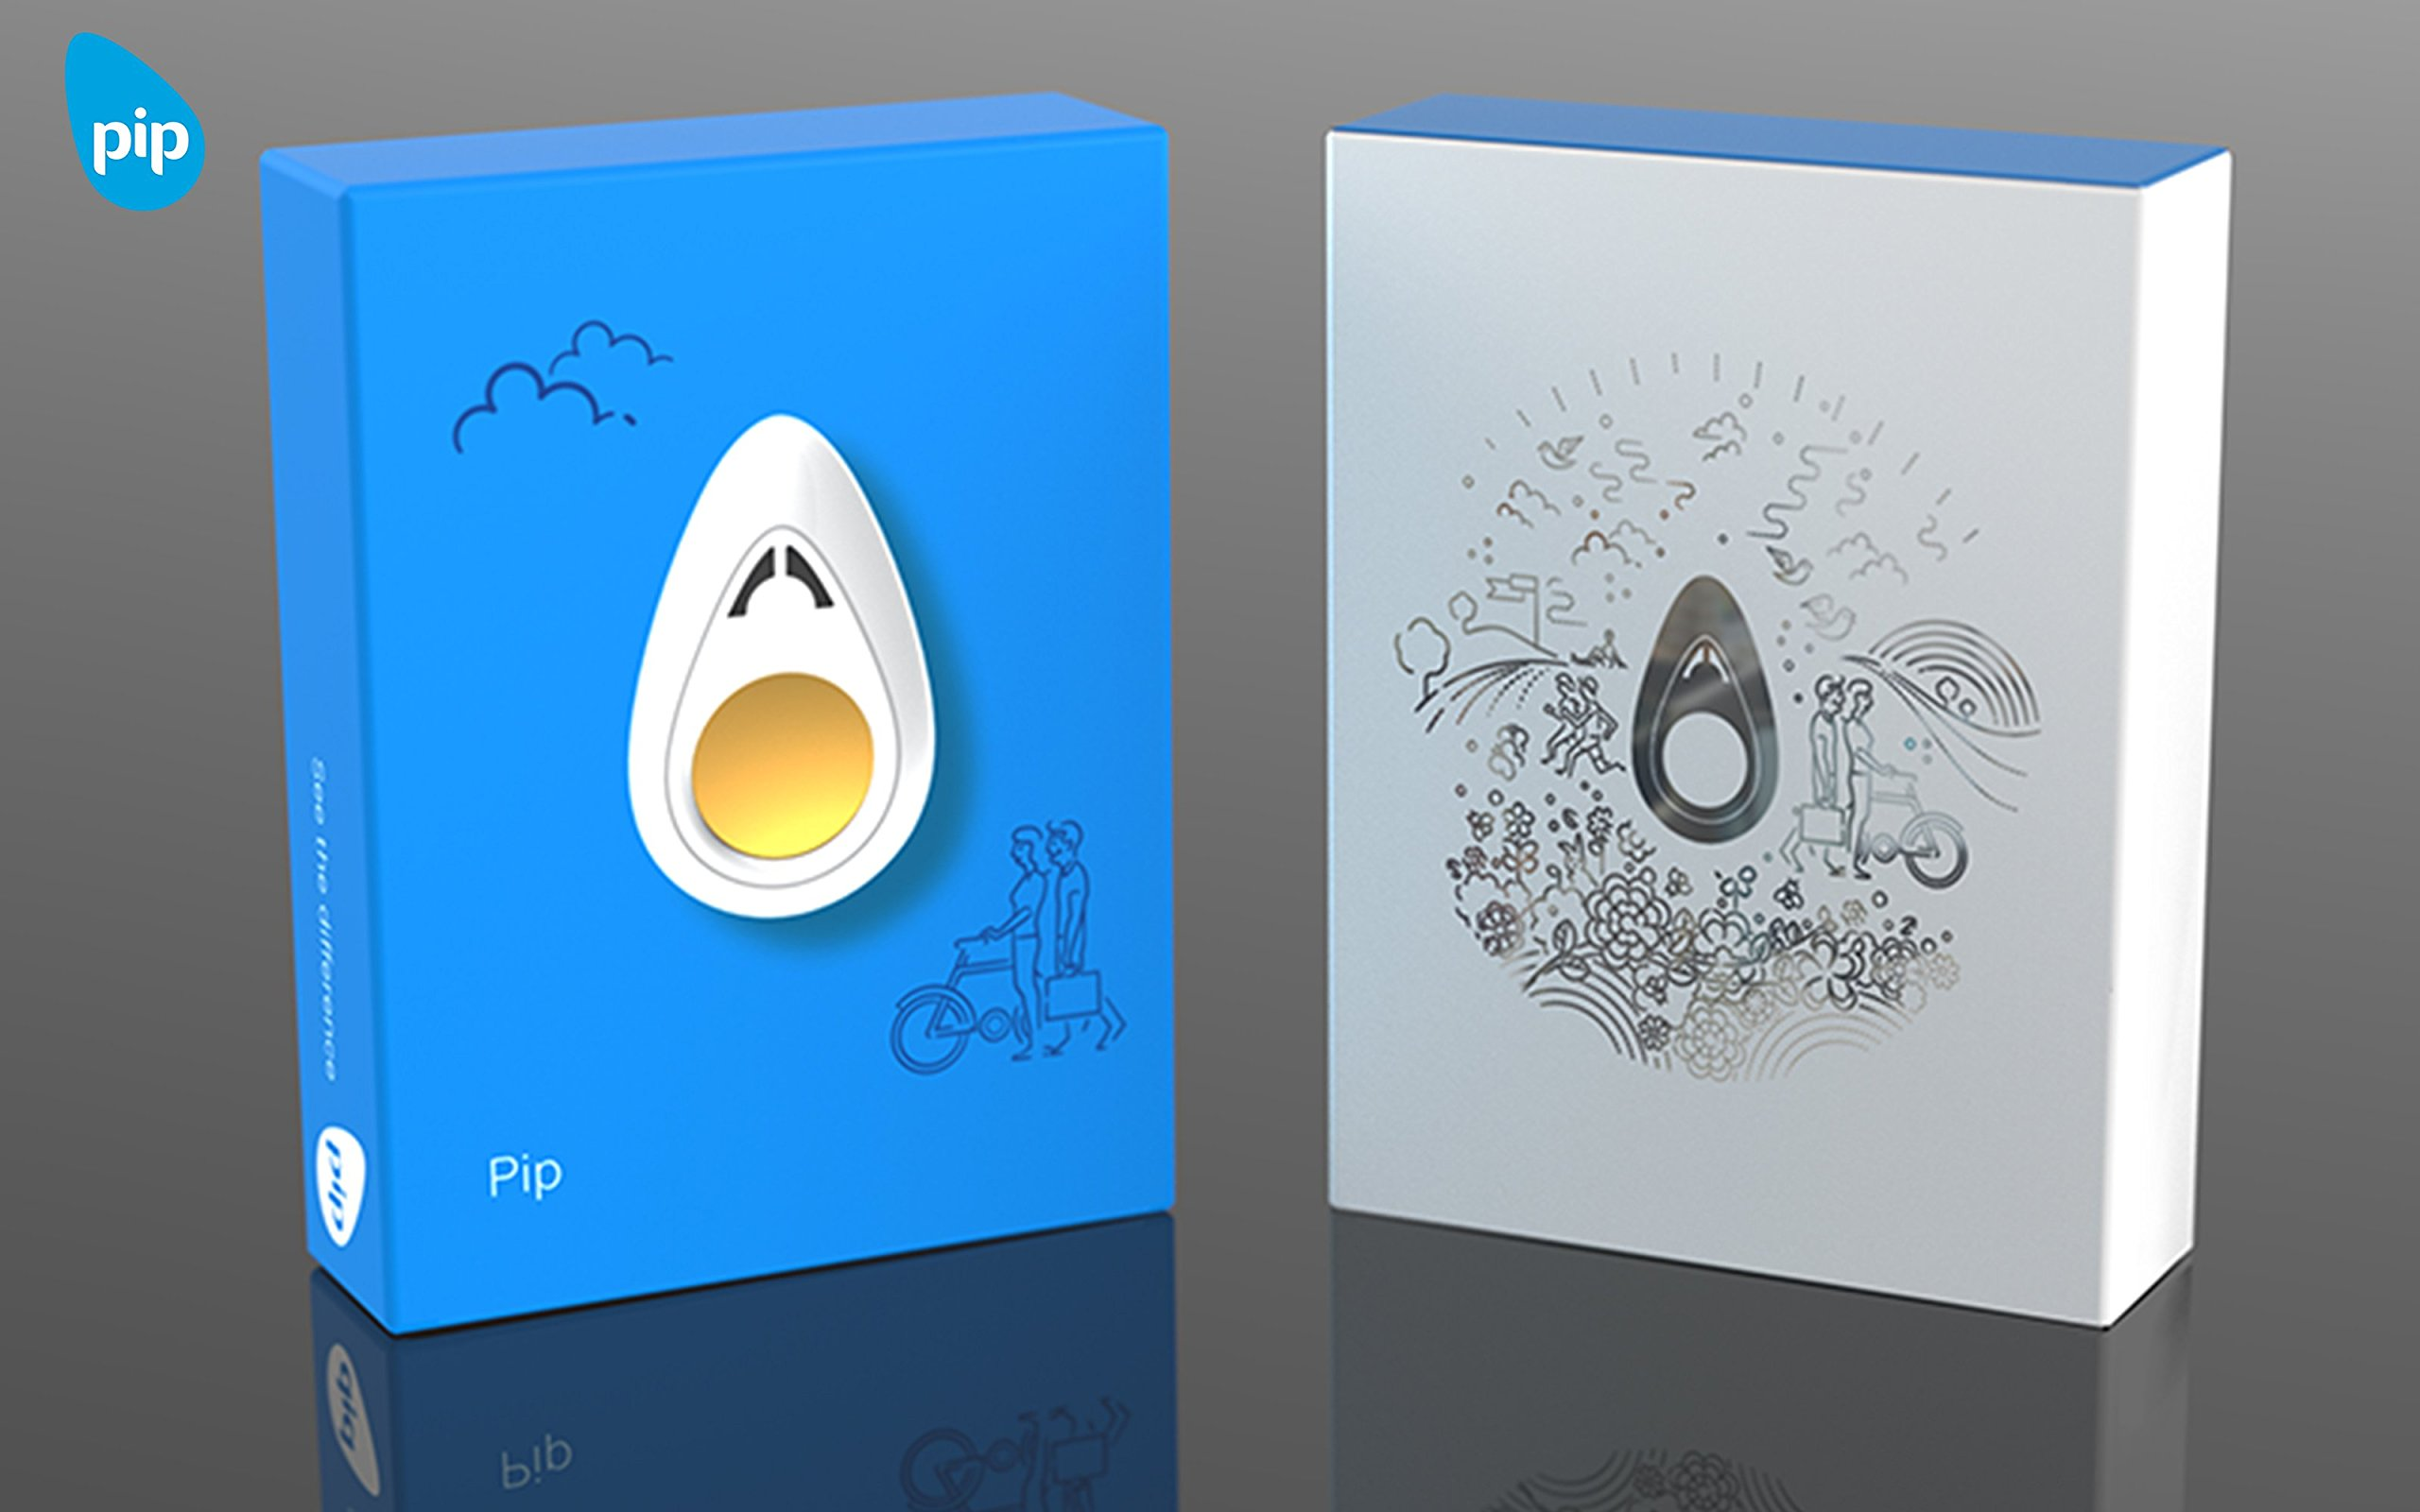 Pip - Personal Stress Sensor & Mental Fitness Trainer - Black by The PIP (Image #8)